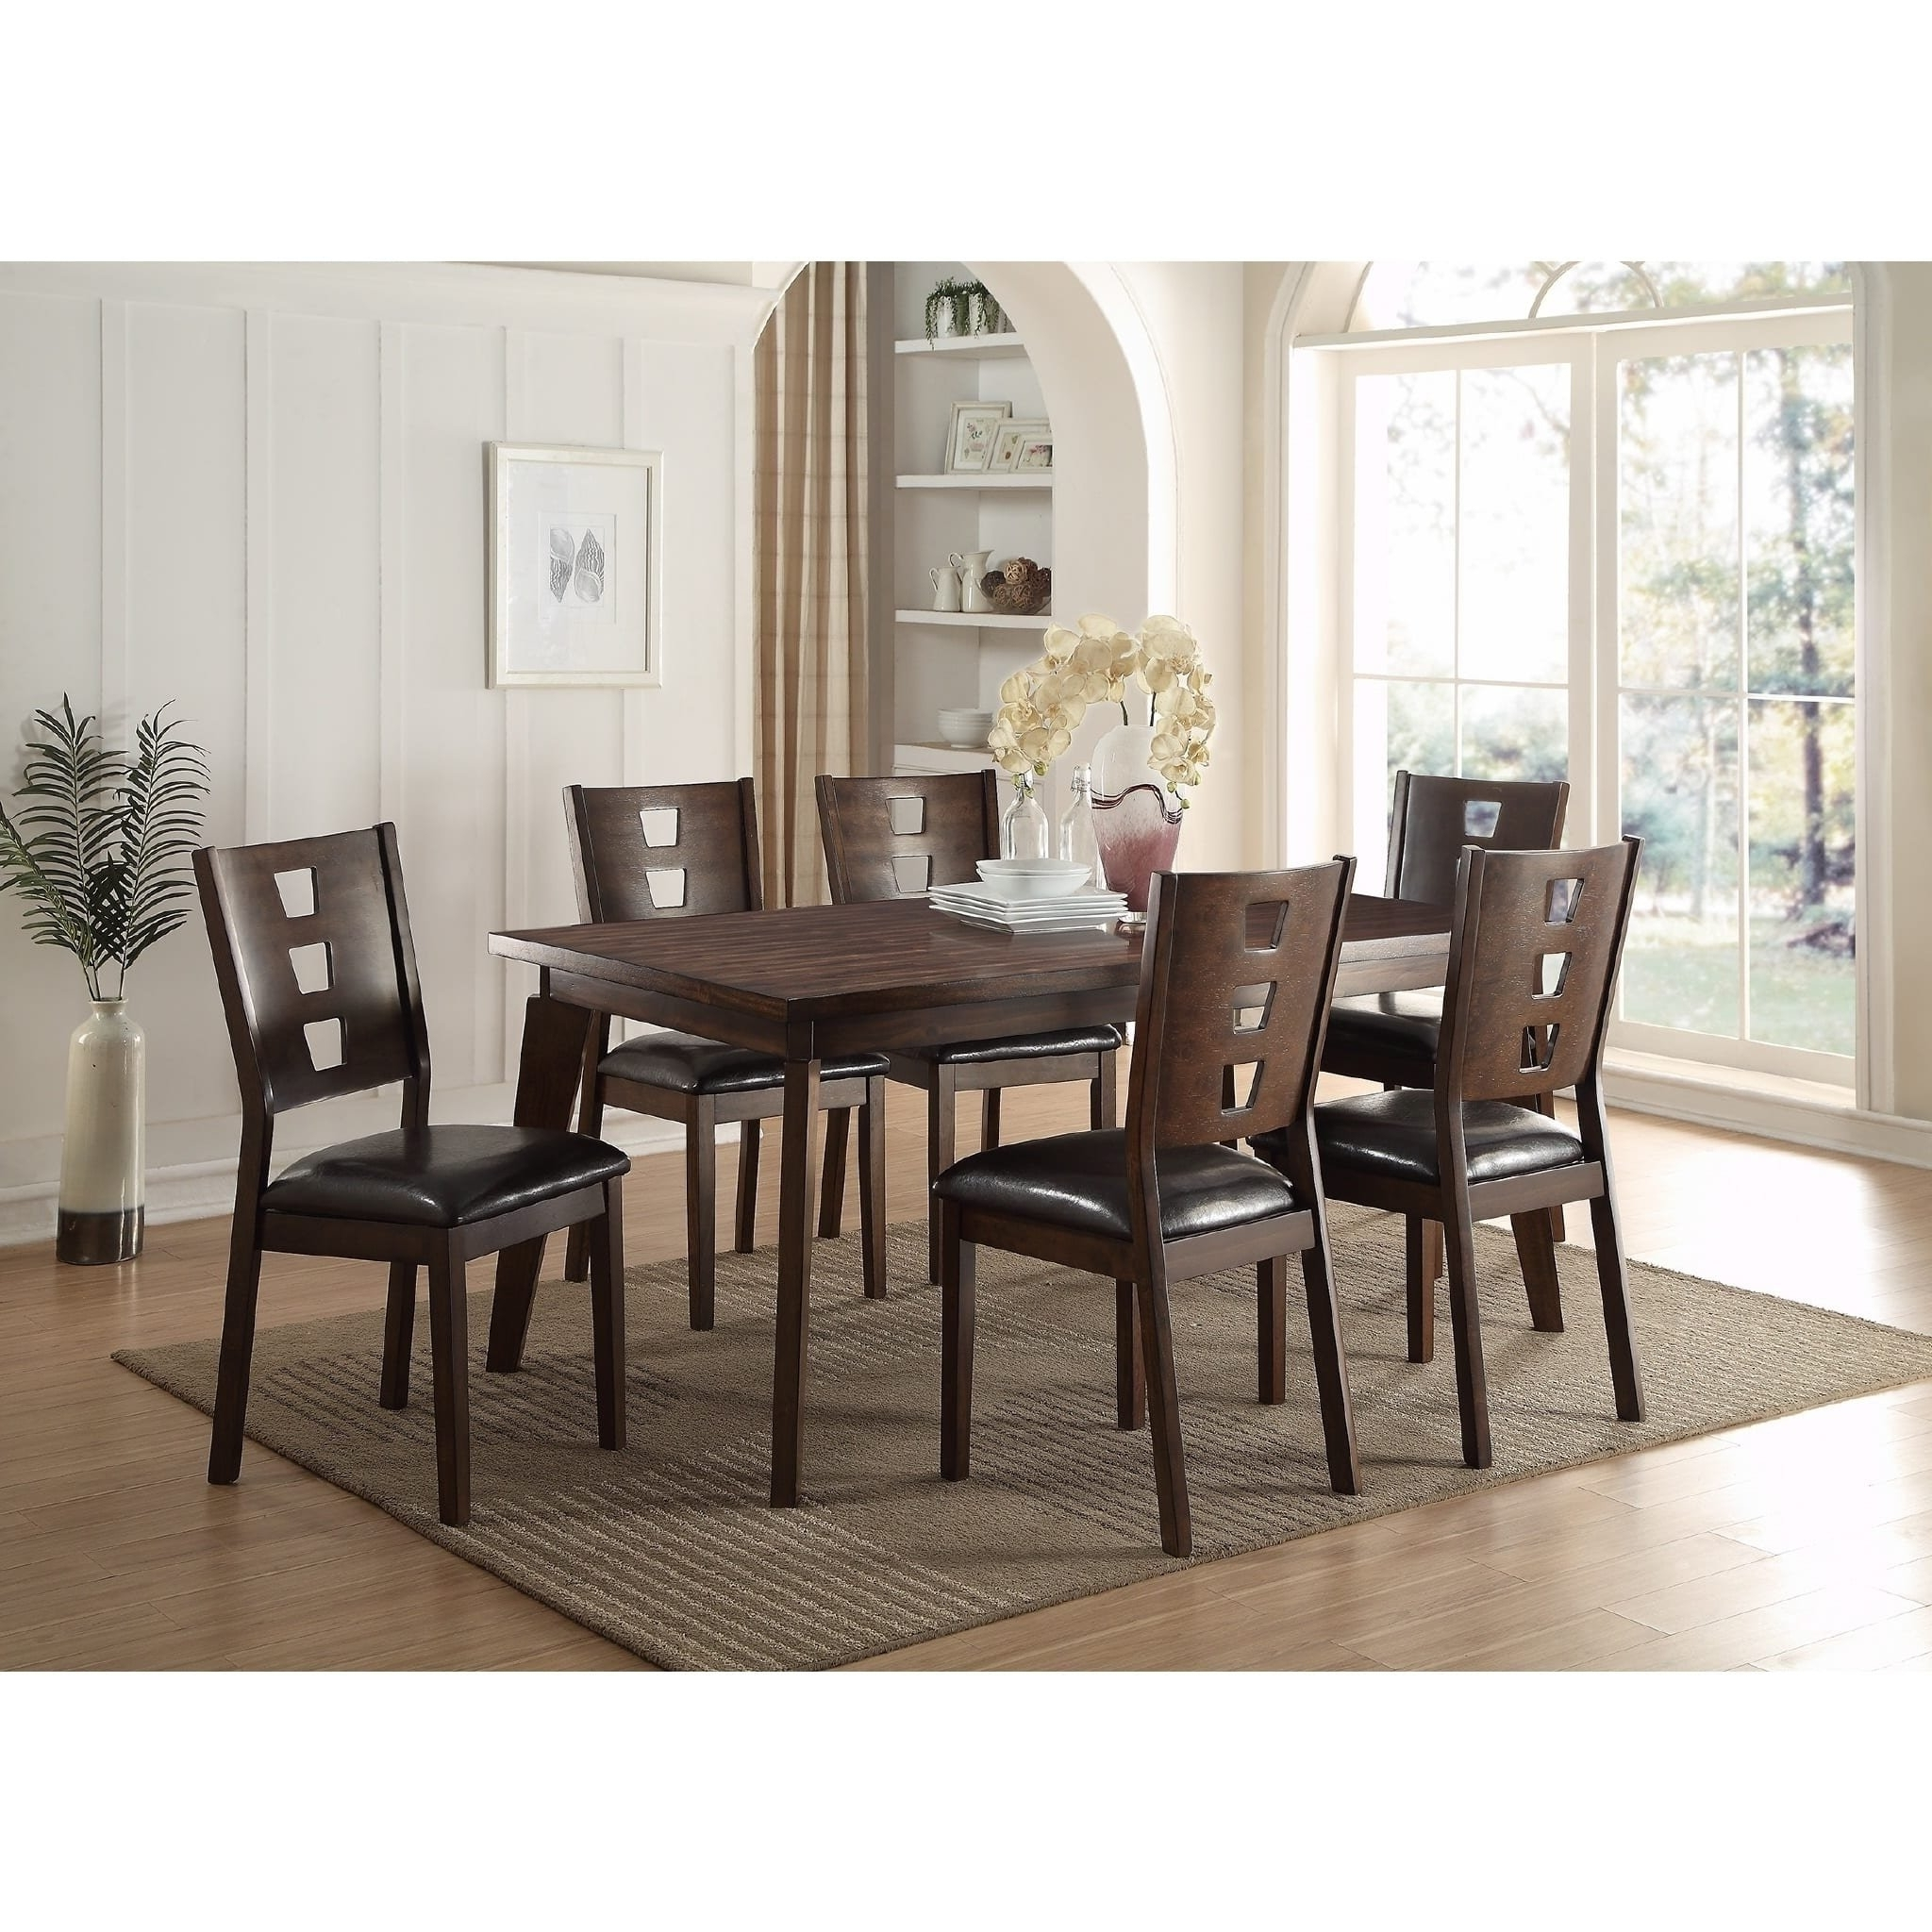 Most Current Shop Joey 7 Piece Dining Set – Free Shipping Today – Overstock Pertaining To Caira Black 7 Piece Dining Sets With Upholstered Side Chairs (Gallery 9 of 25)